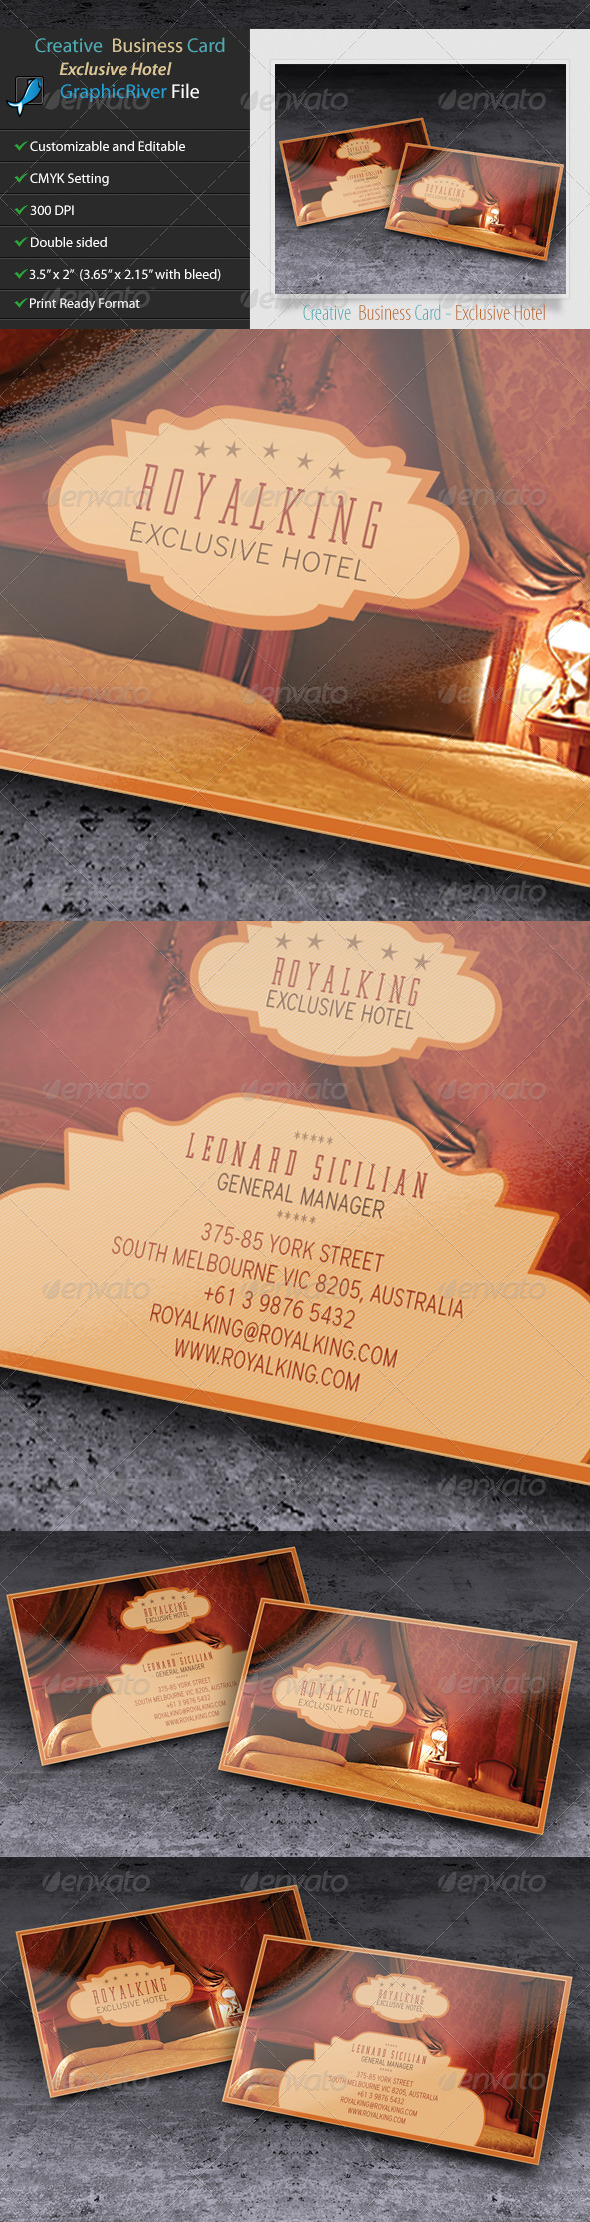 GraphicRiver Creative business card Exclusive Hotel 5664459